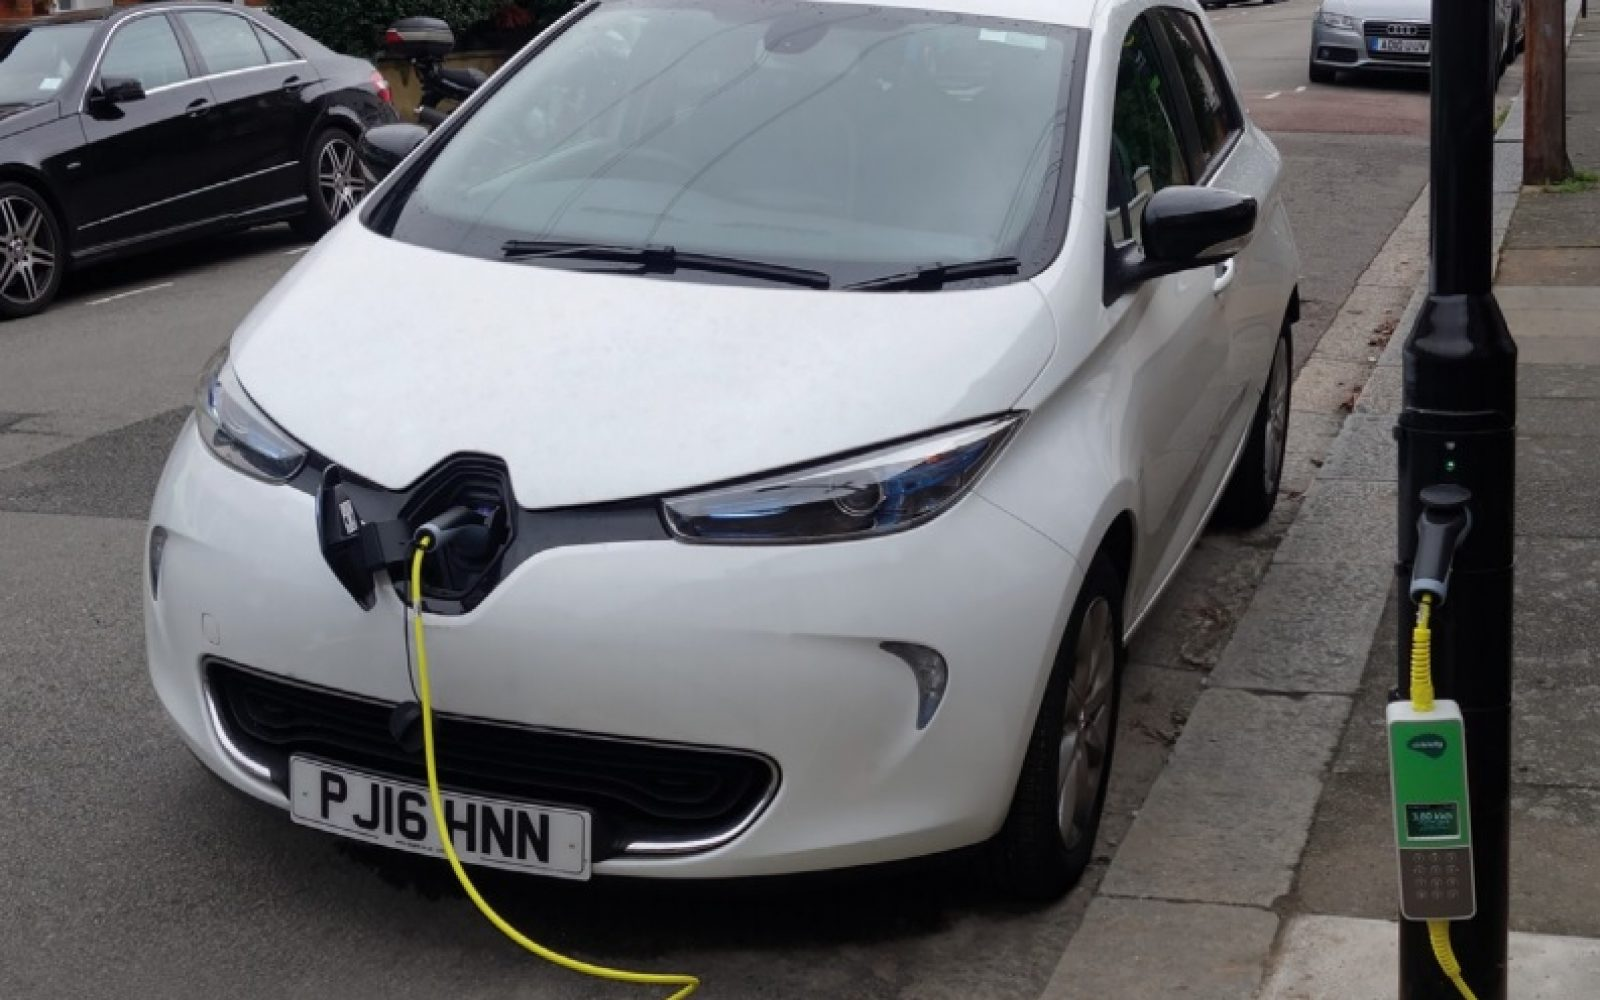 siemens to deploy london's street light electric vehicle chargers